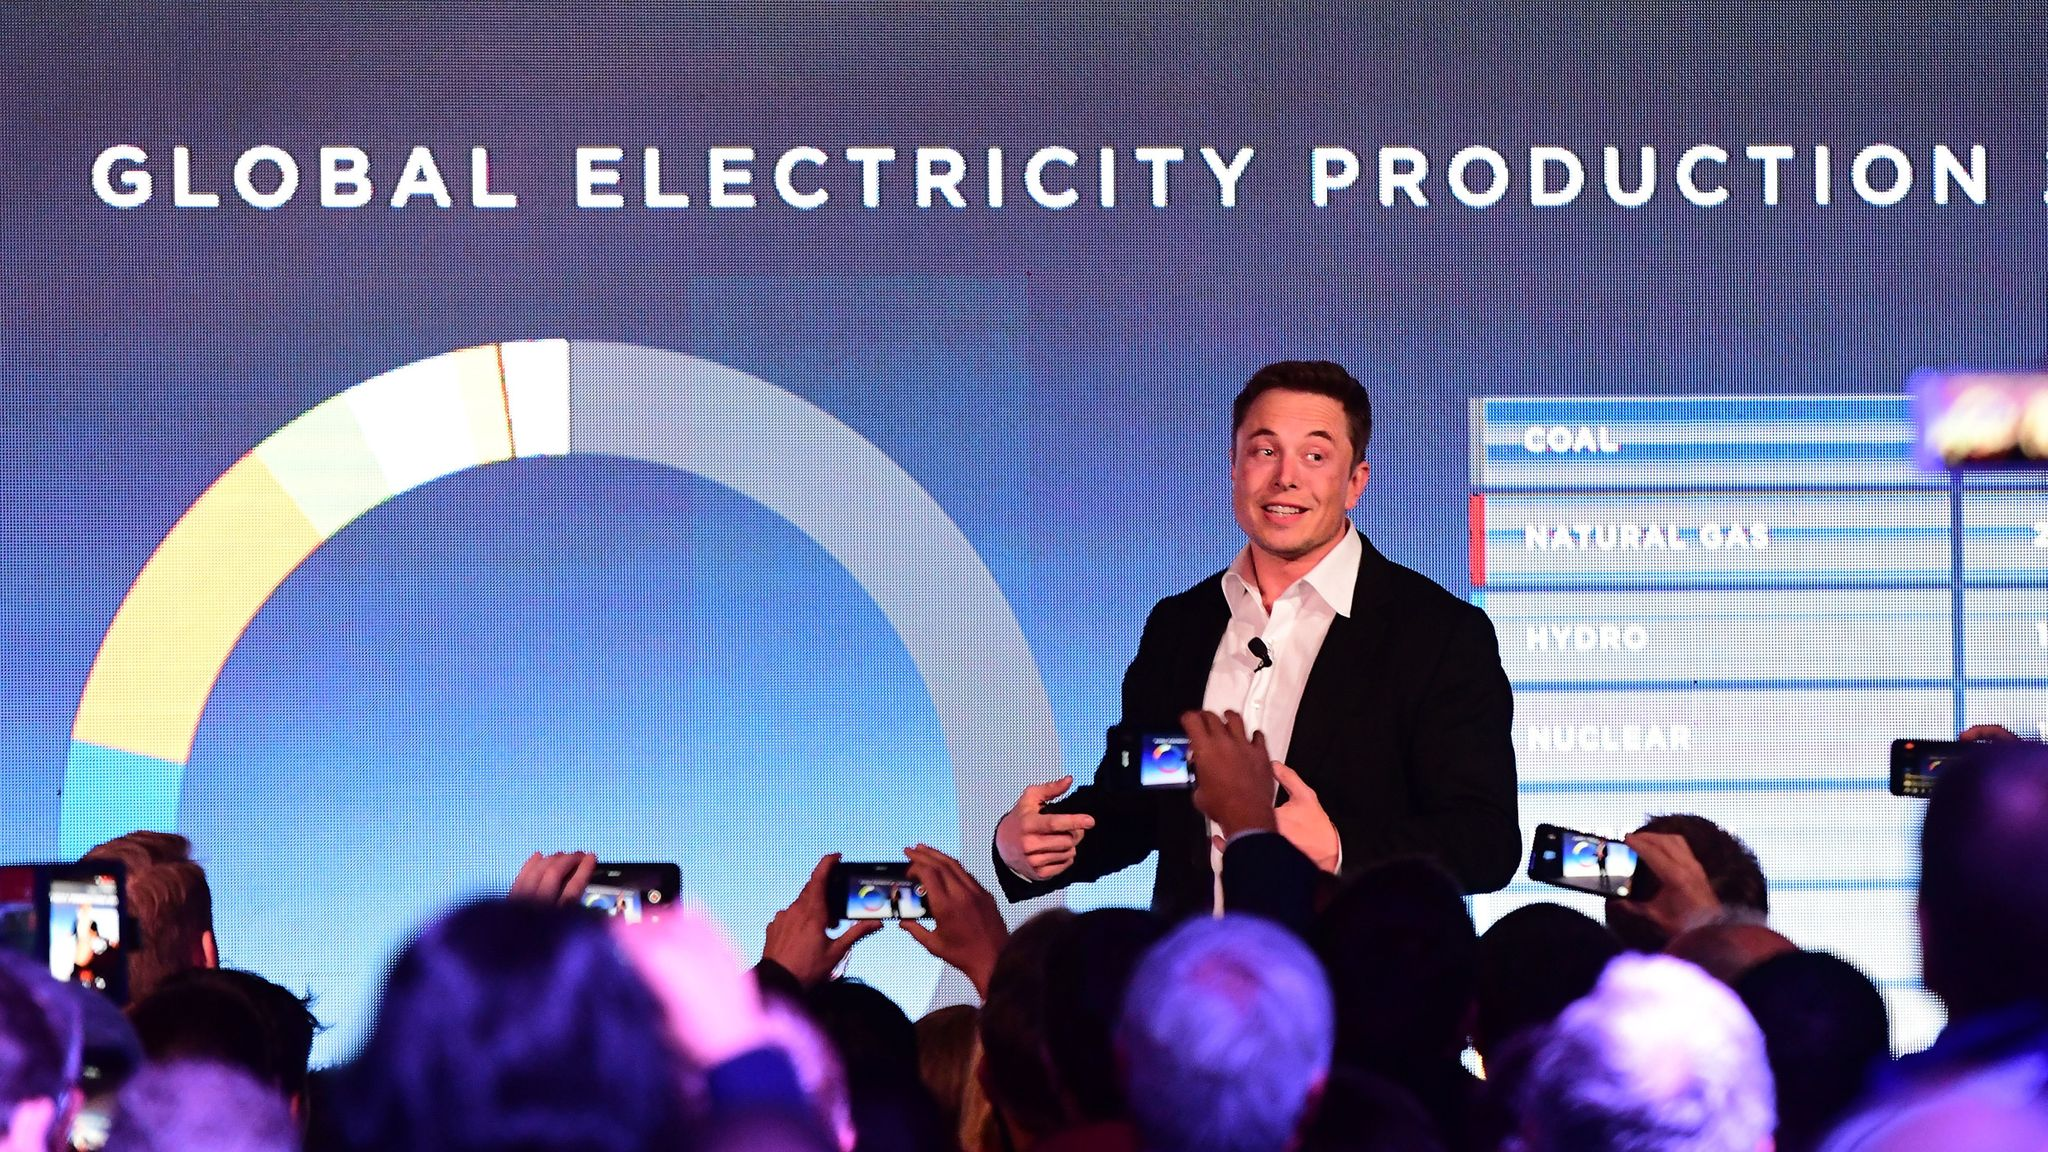 Tesla has applied to become a UK electricity provider